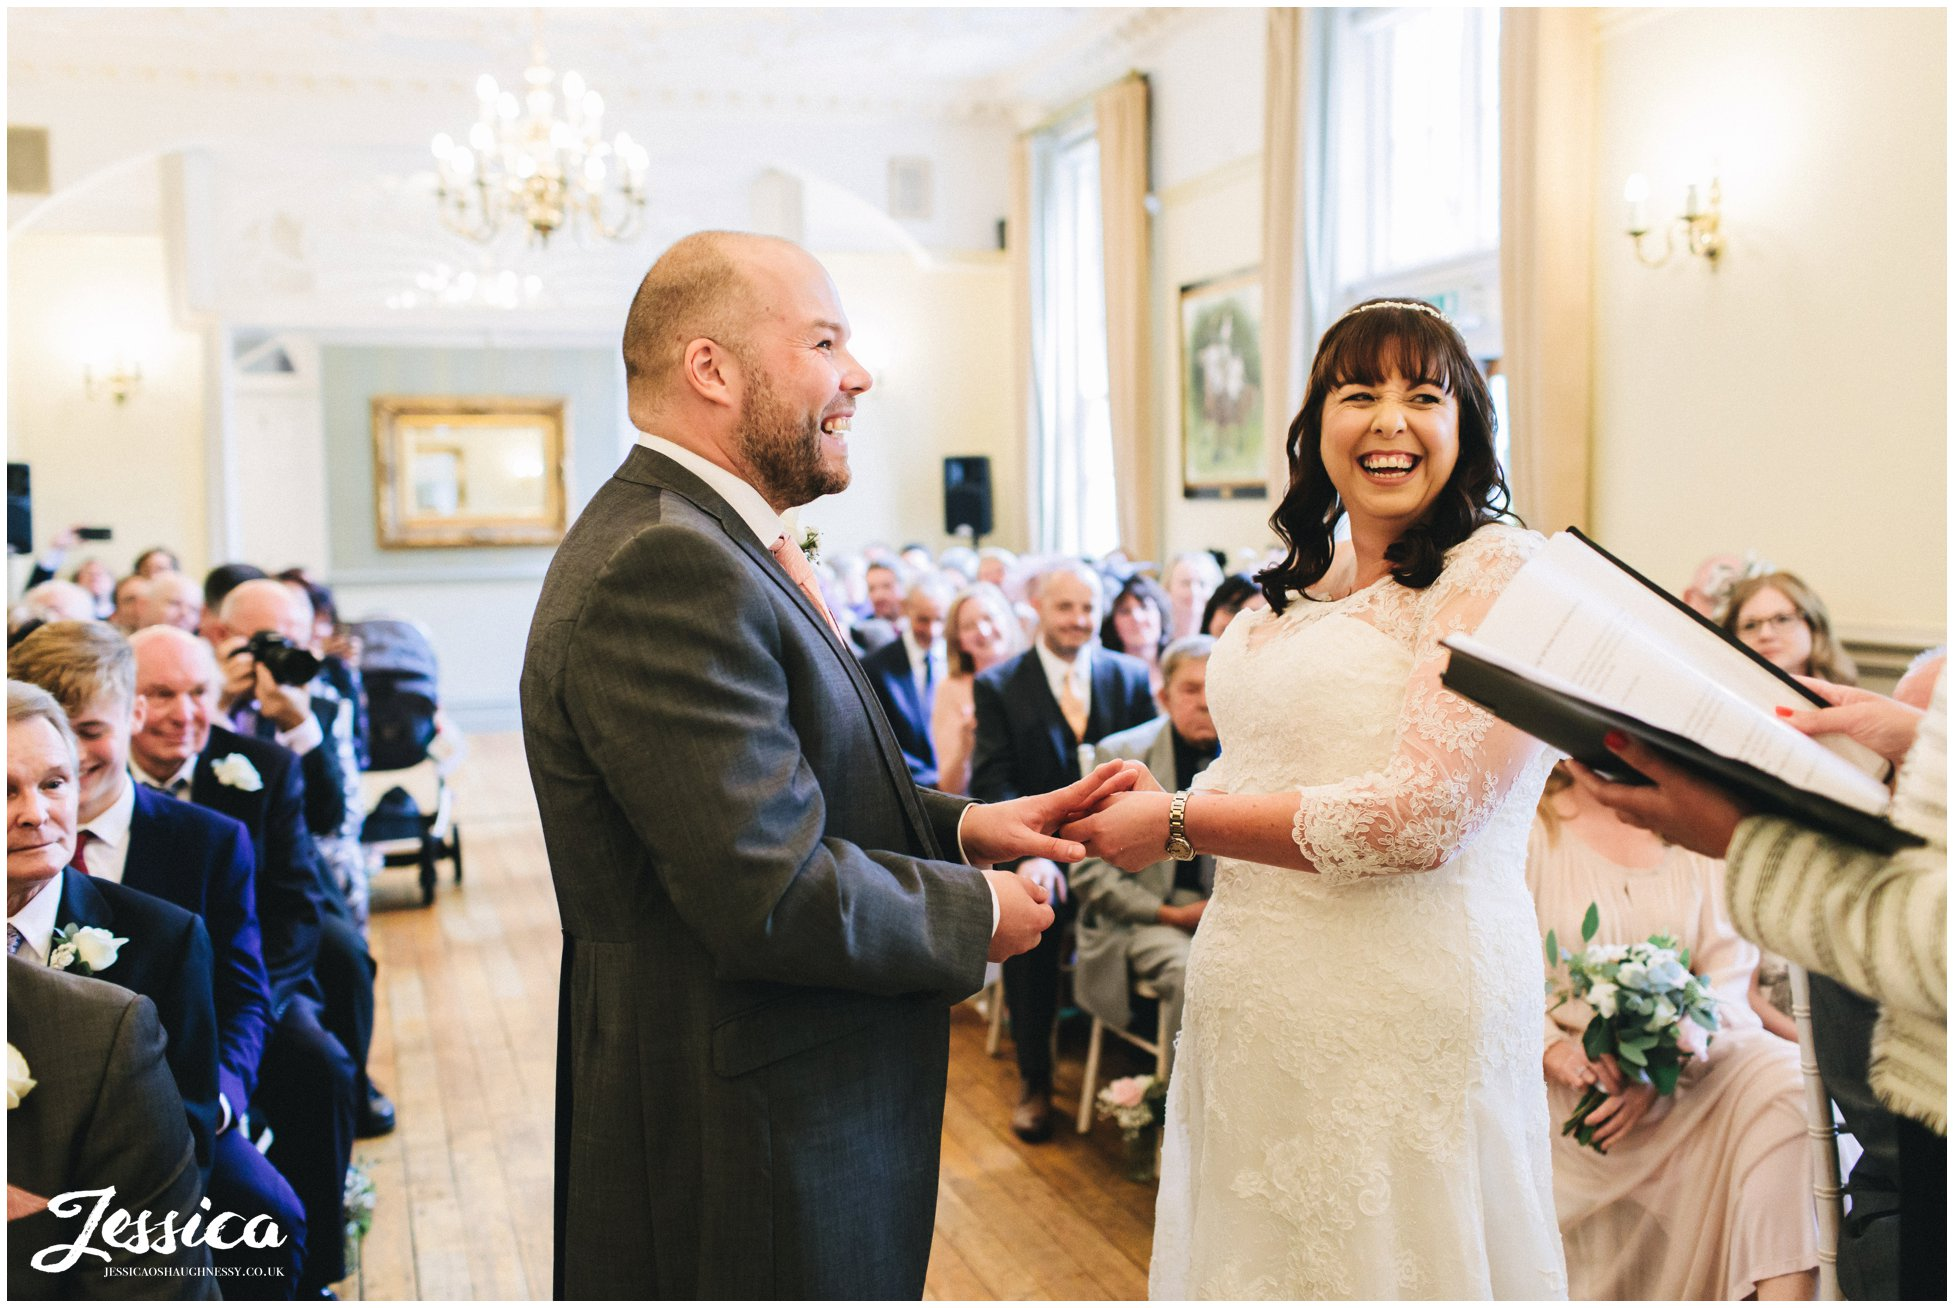 the couple laugh during their wedding ceremony at nunsmere hall